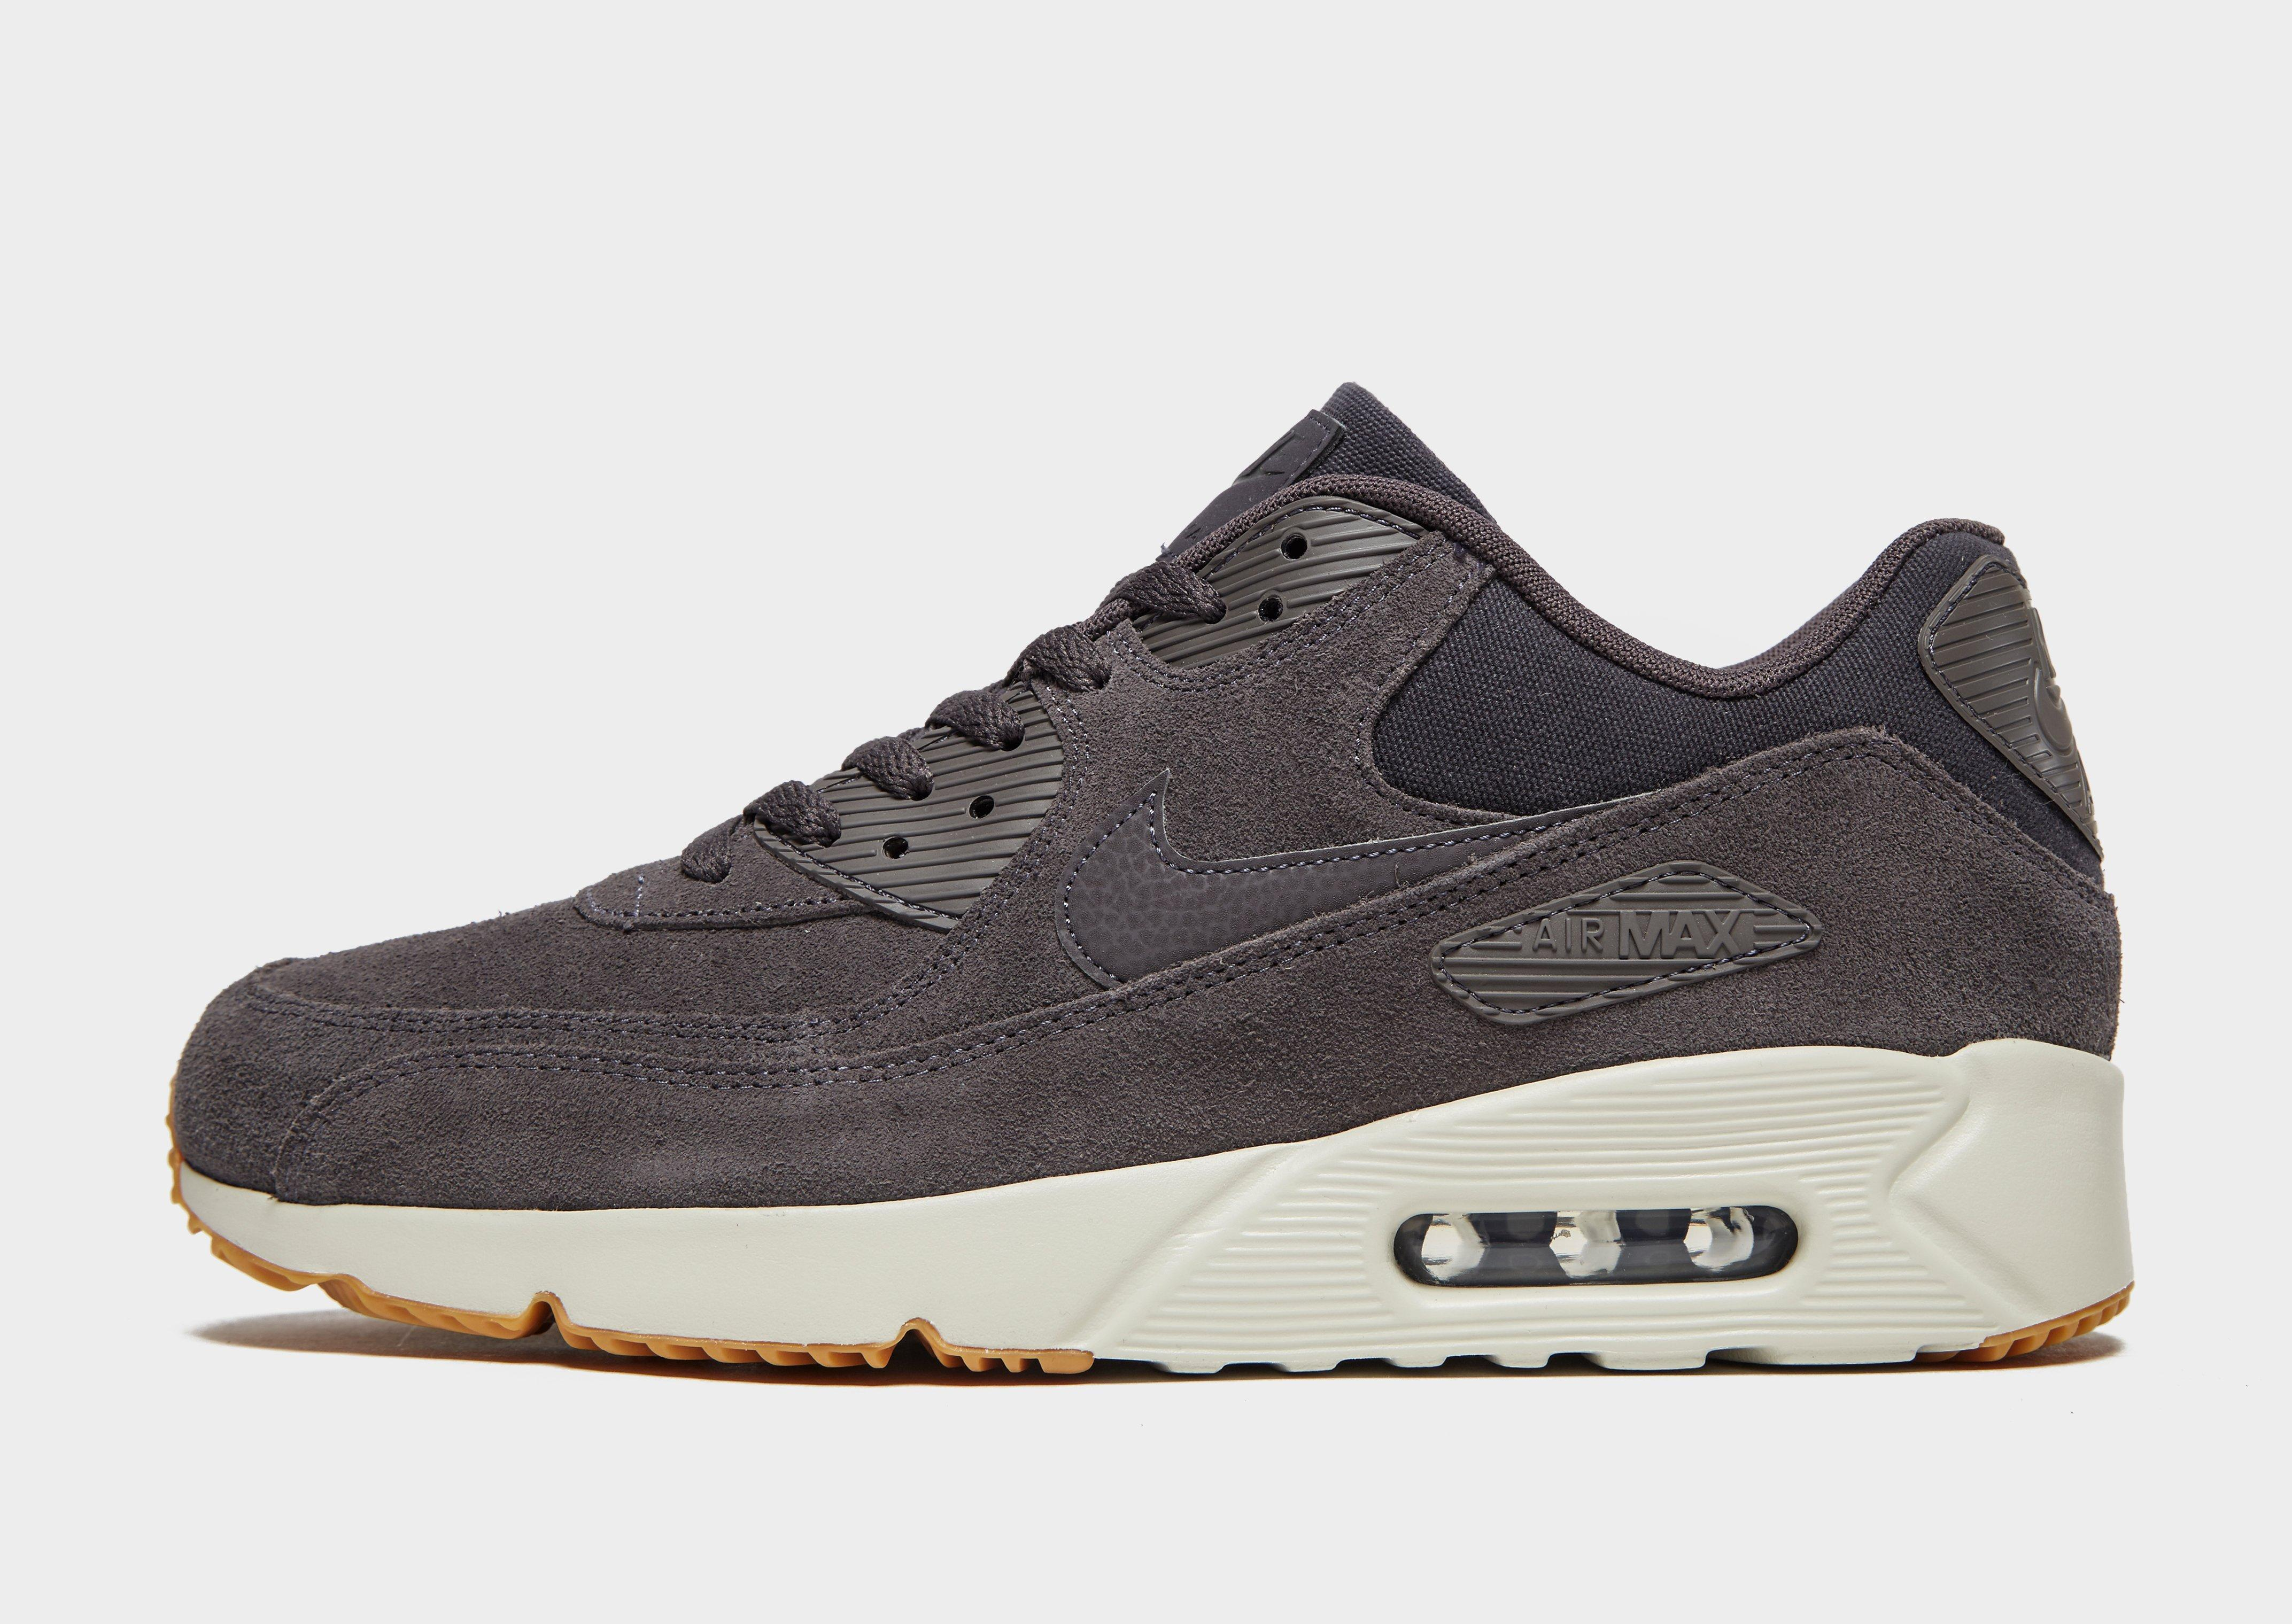 Nike Leather Air Max 90 Ultra 2.0 Ltr Gymnastics Shoes in Grey ...